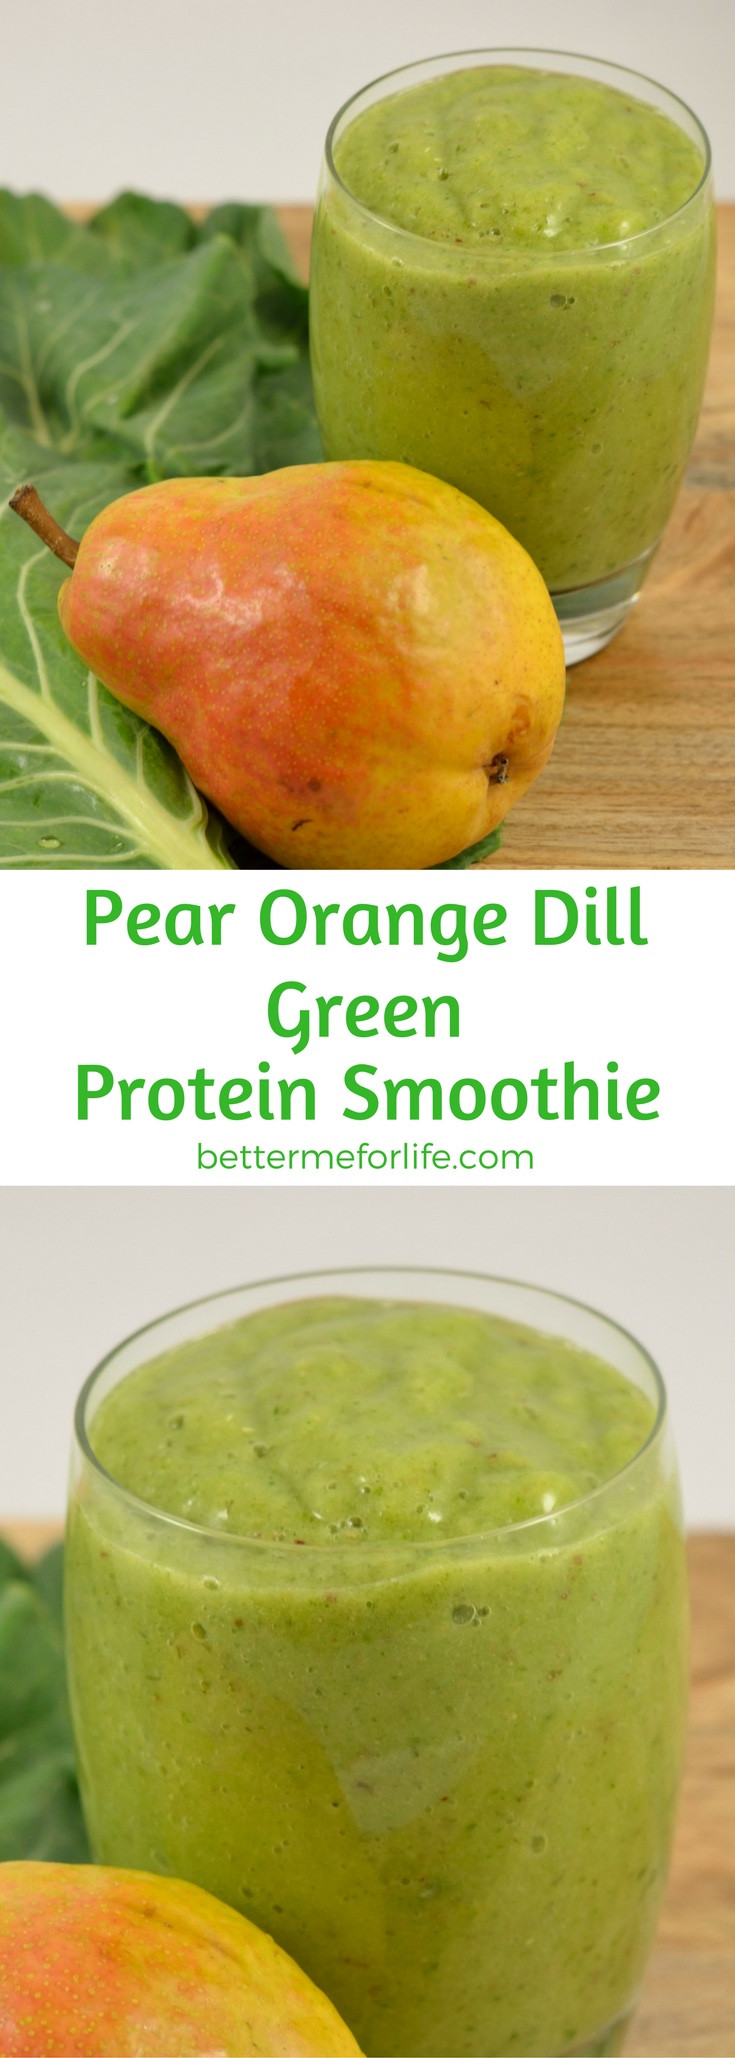 Green Smoothies For Life  Pear Orange Dill Green Smoothie Better Me for Life